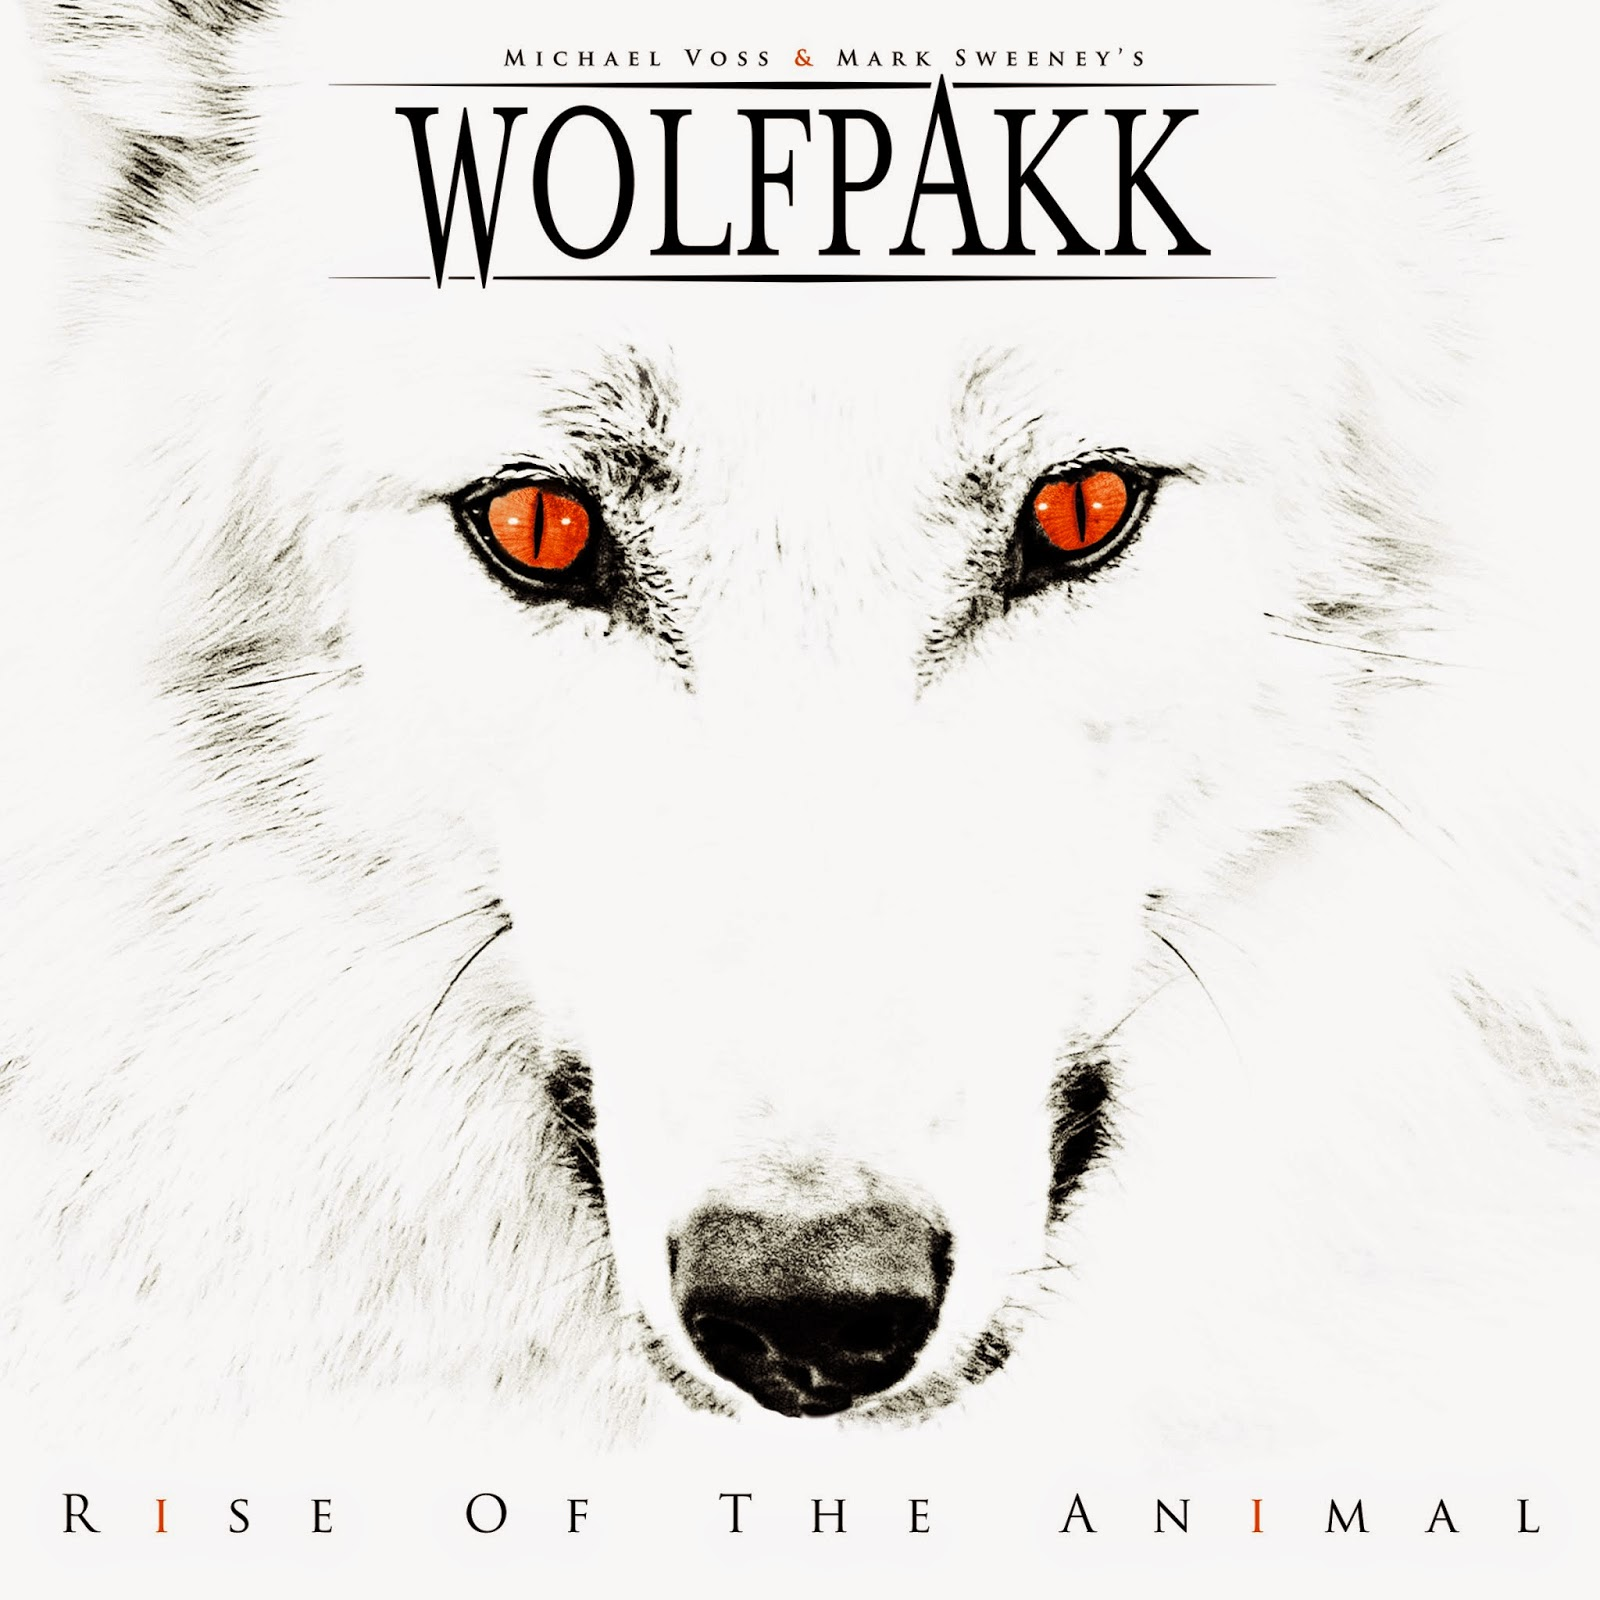 http://rock-and-metal-4-you.blogspot.de/2015/02/cd-review-wolfpakk-rise-of-animal.html